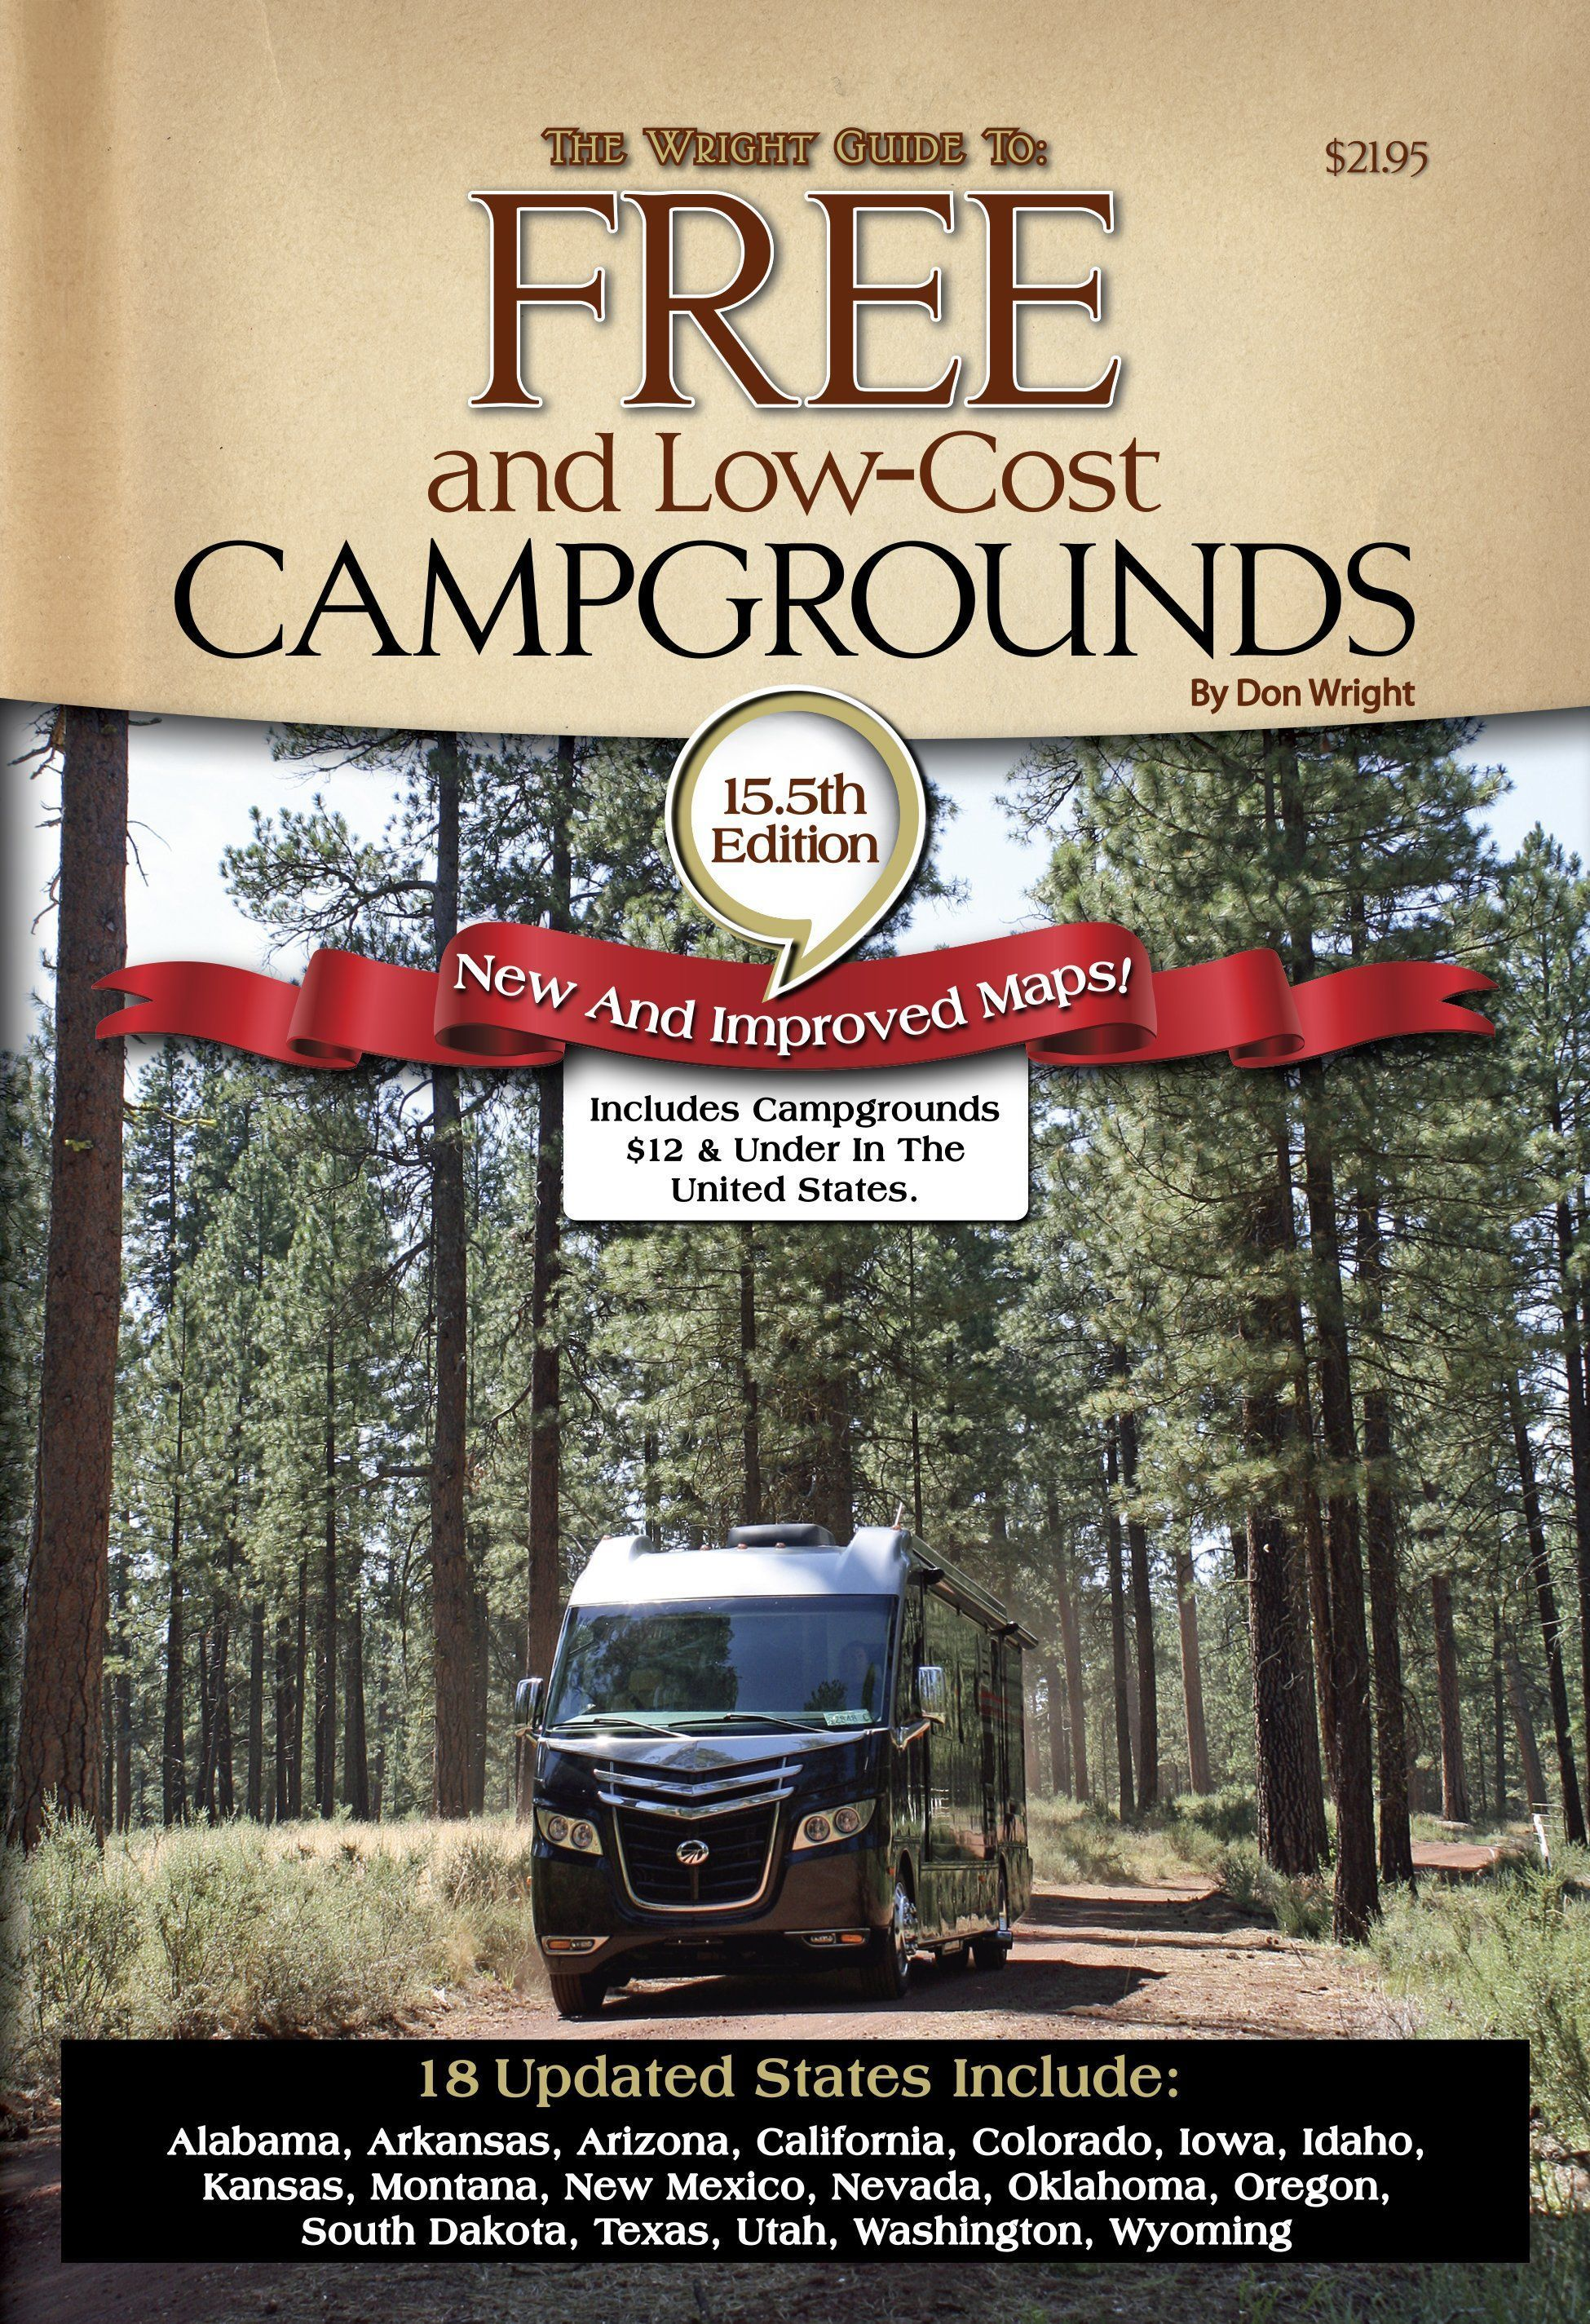 Camping guide The Wright Guide to Free